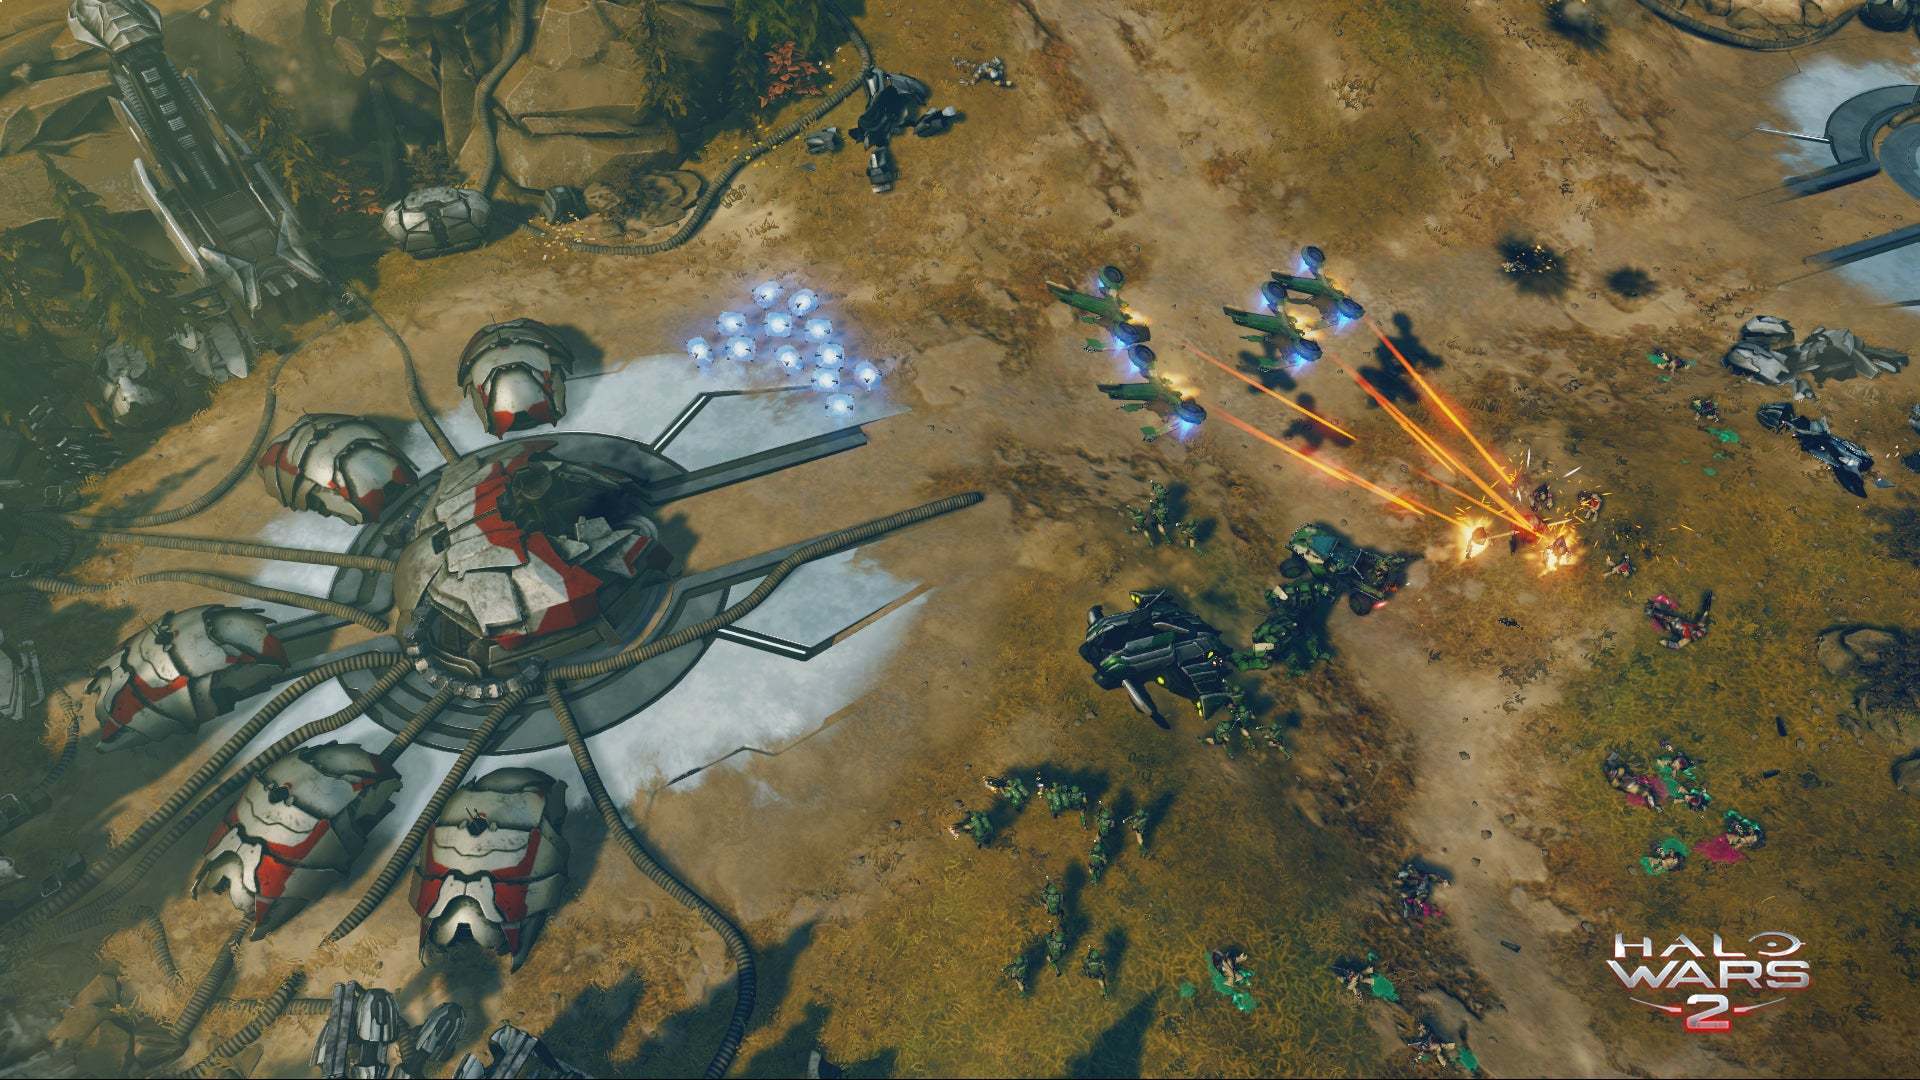 Halo Wars 2 campaign preview: Polished, pretty, but not as